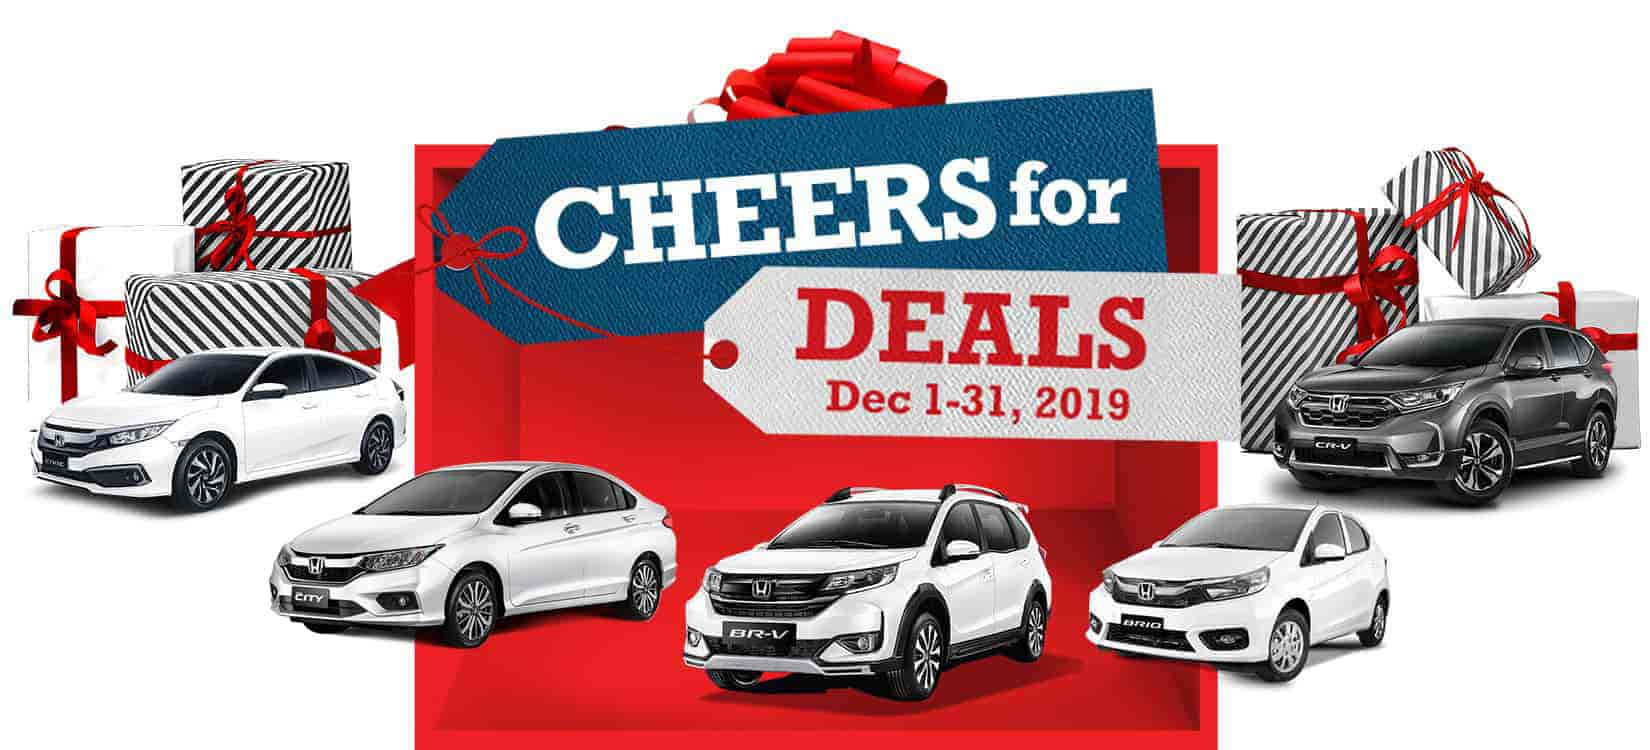 Get More Holiday Promos this December with Honda